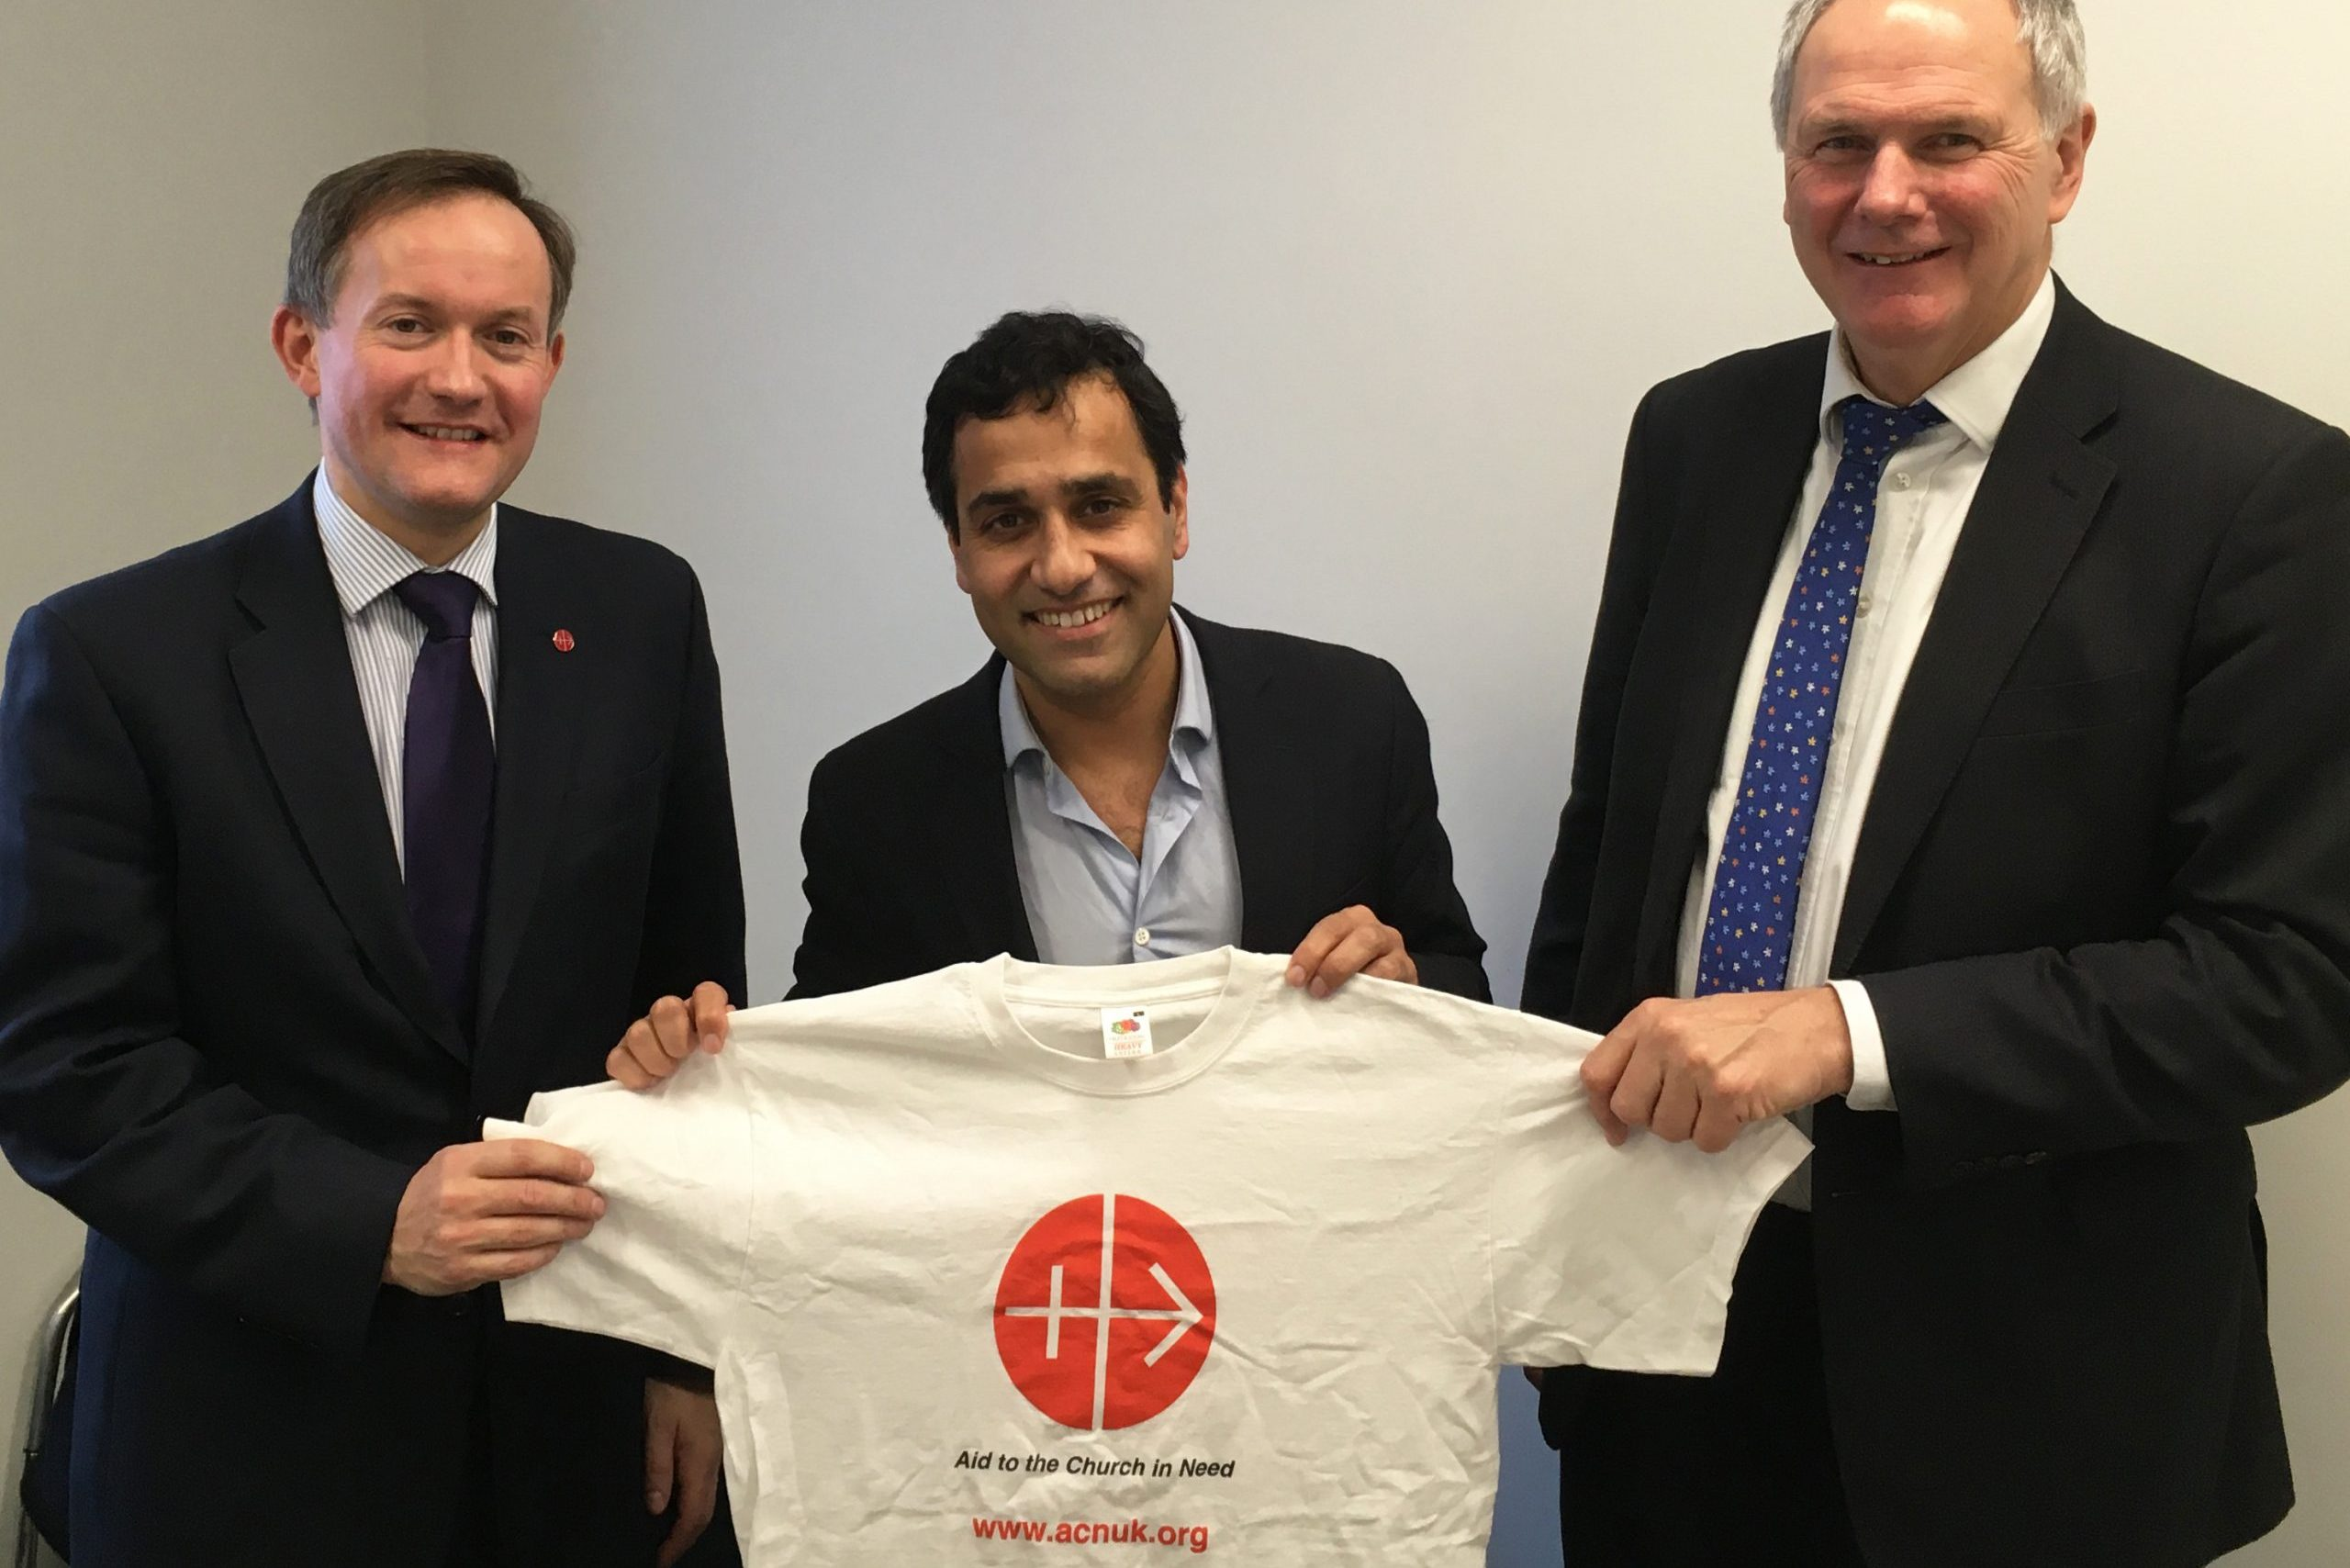 Rehman Chishti, MP for Gillingham and Rainham, flanked by John Pontifex, Head of Press & Information, ACN (UK) (left) and Neville Kyrke-Smith, National Director, ACN (UK)